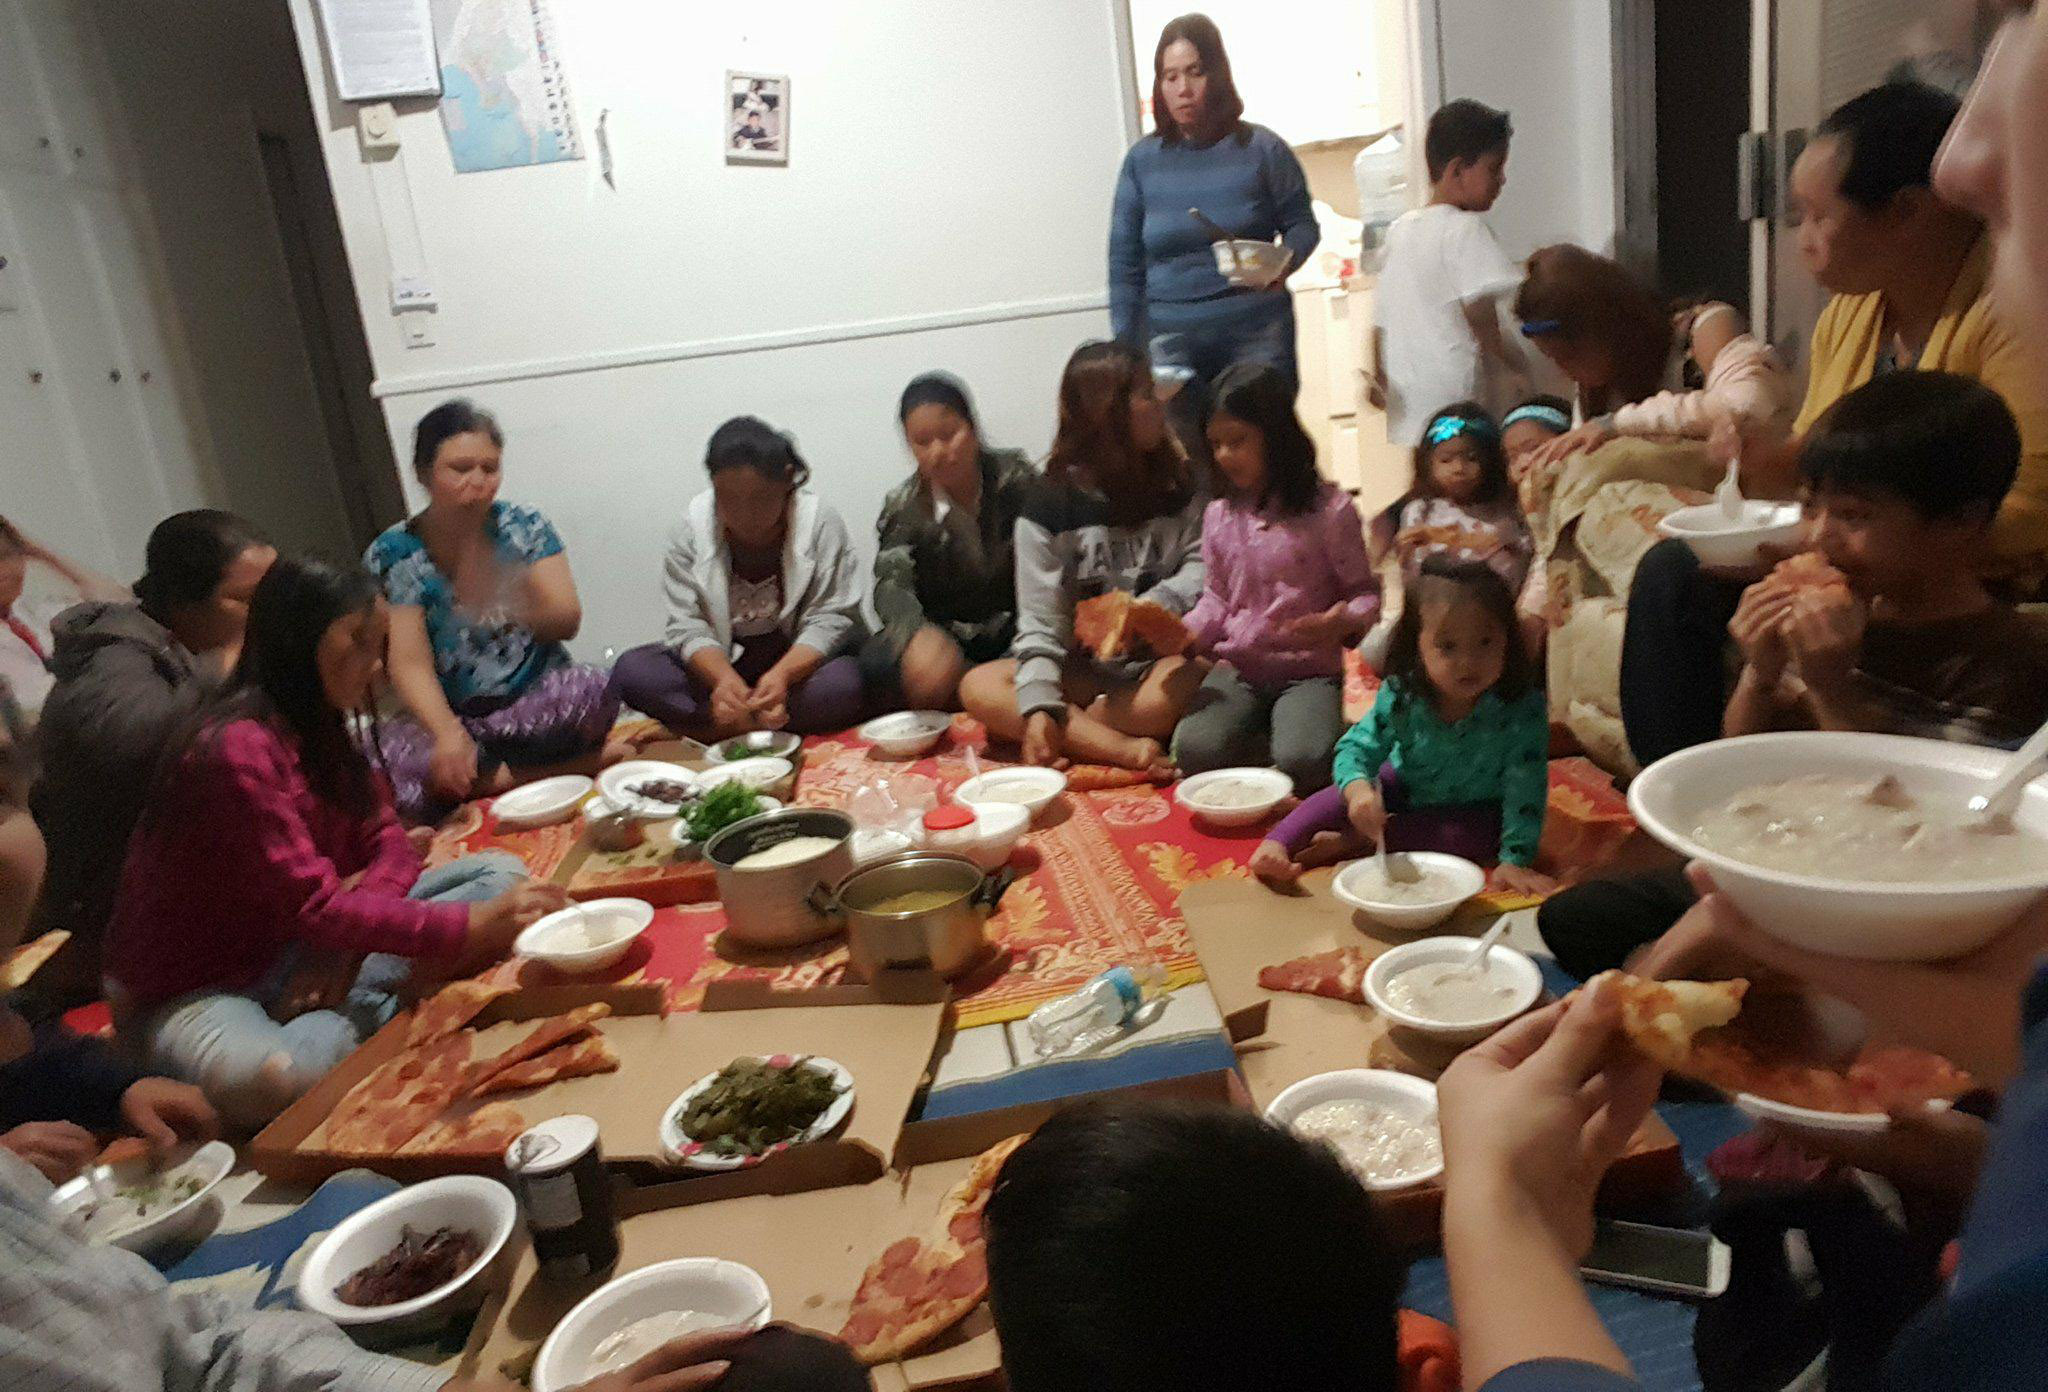 Members of Agape Myanmar Mission share a Burmese meal after their Sunday worship in San Diego's City Heights neighborhood. (Submitted photo)